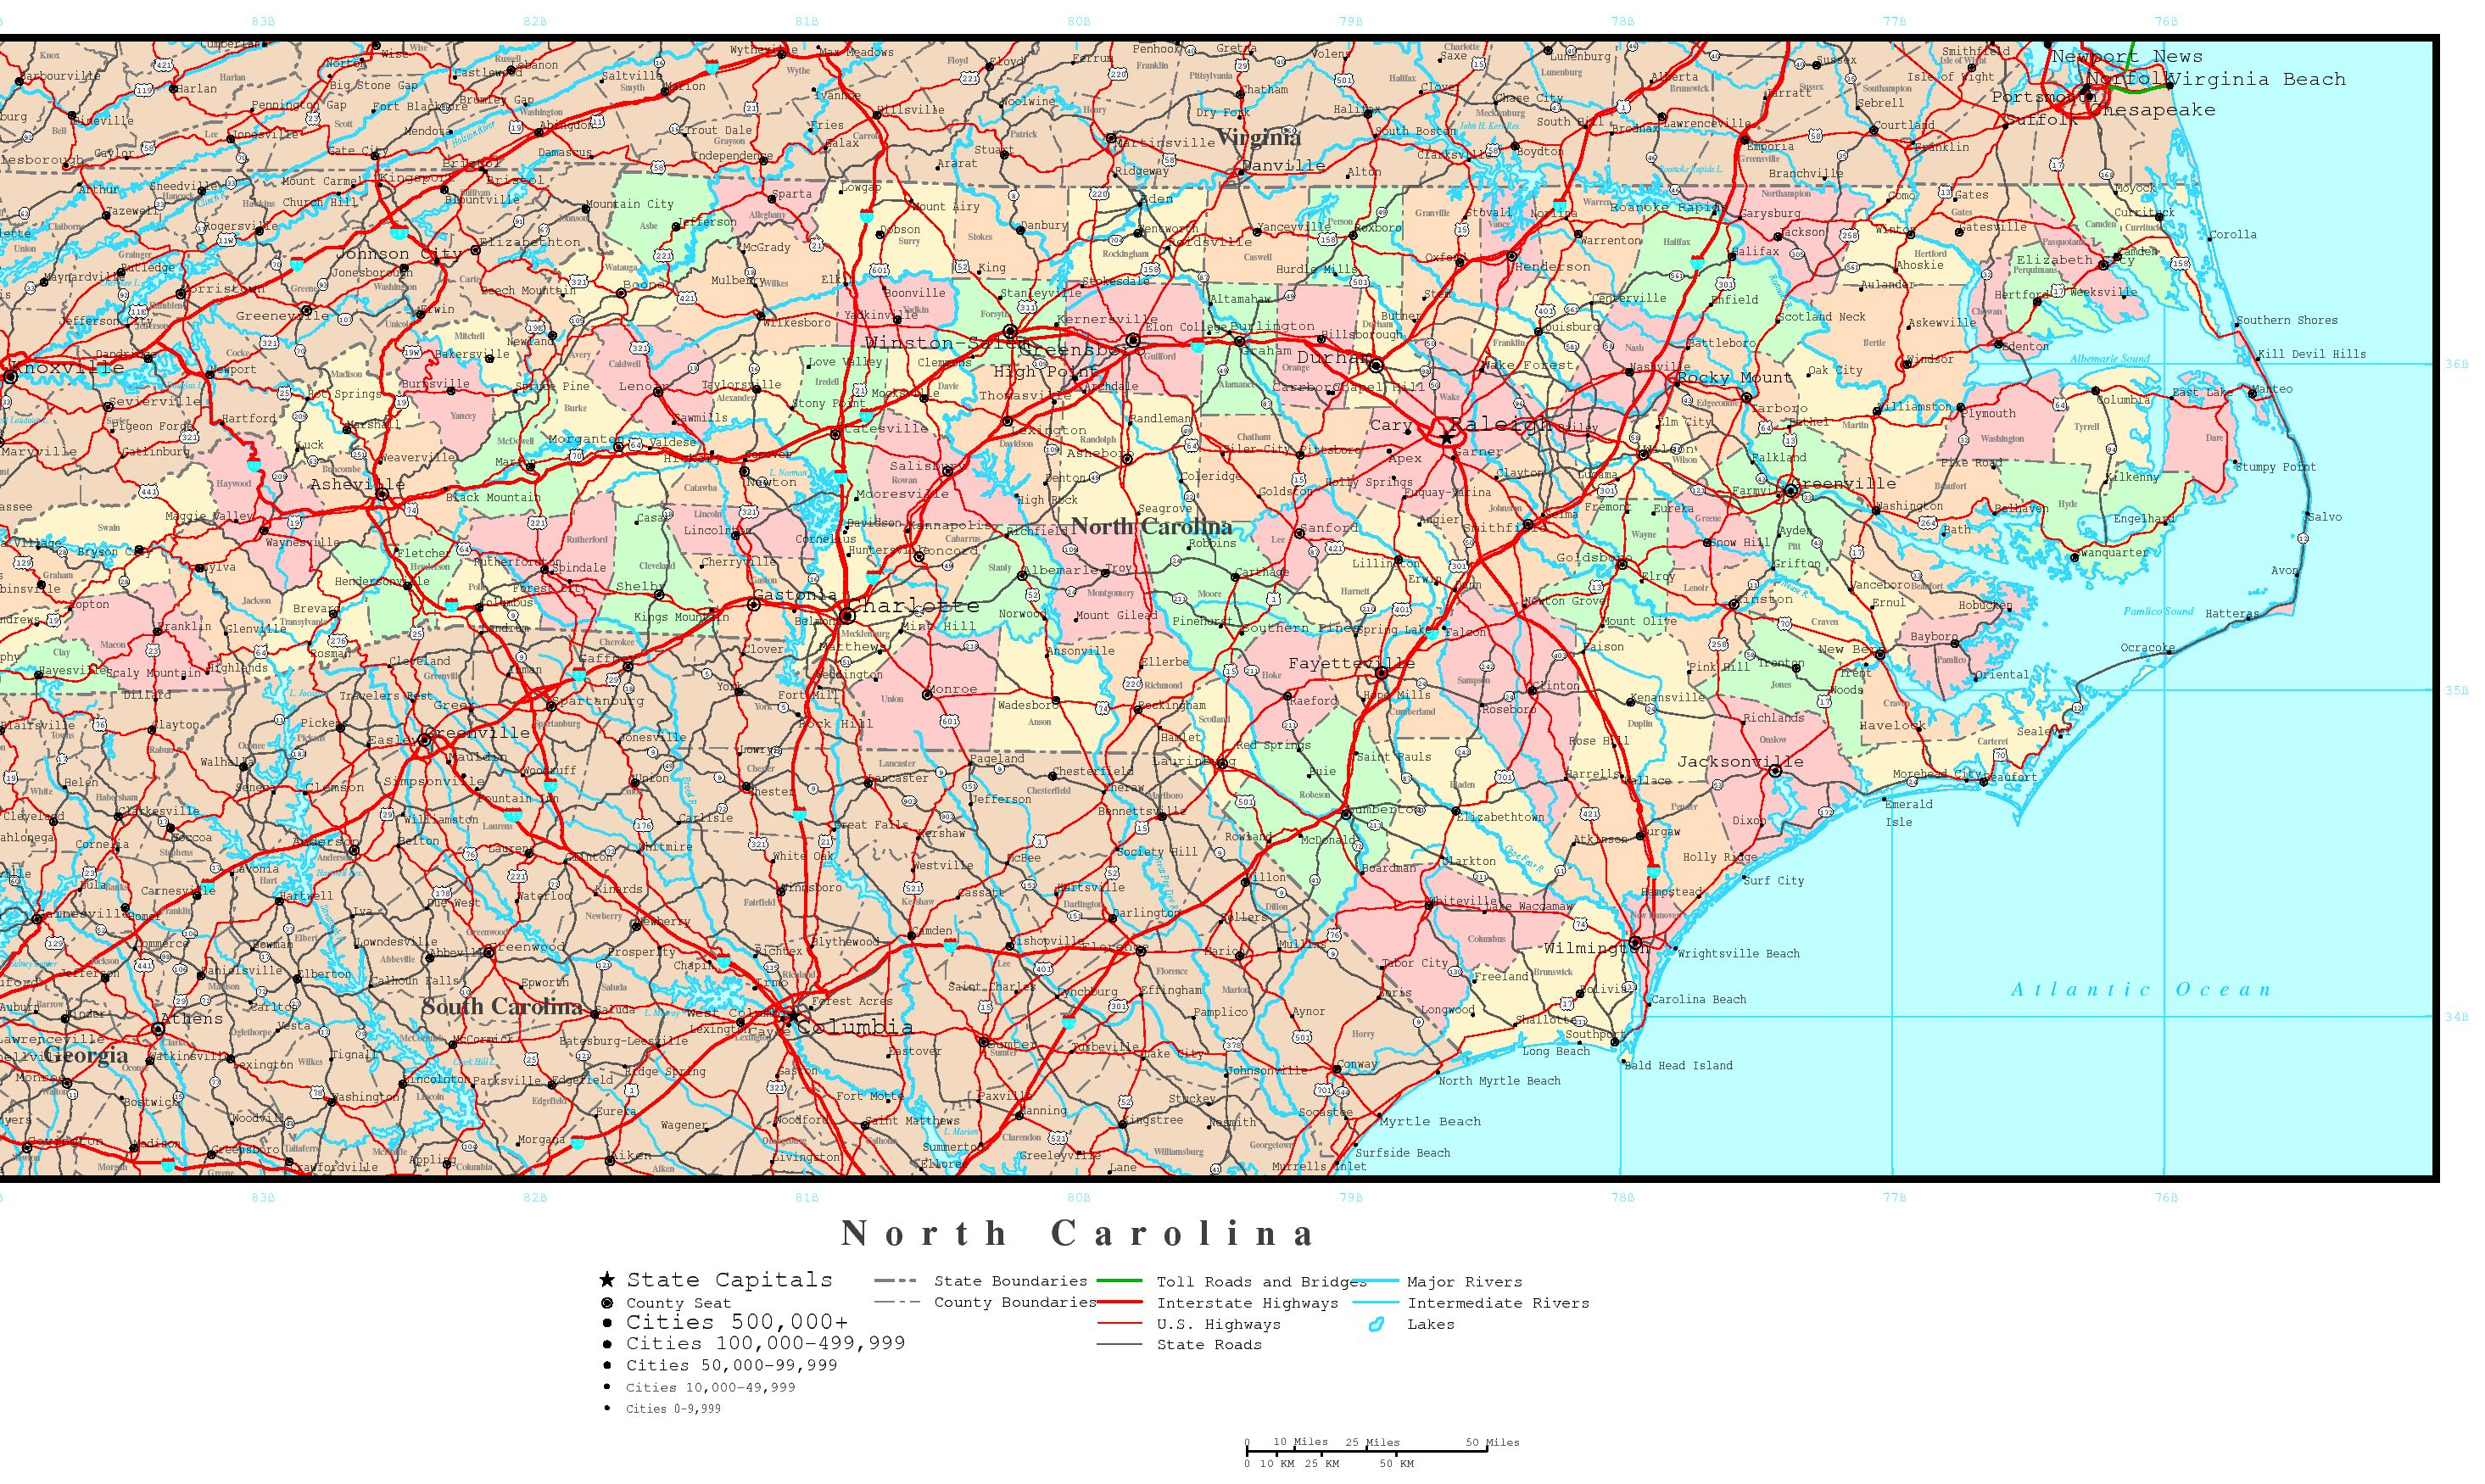 North Carolina Political Map - North carolina political map